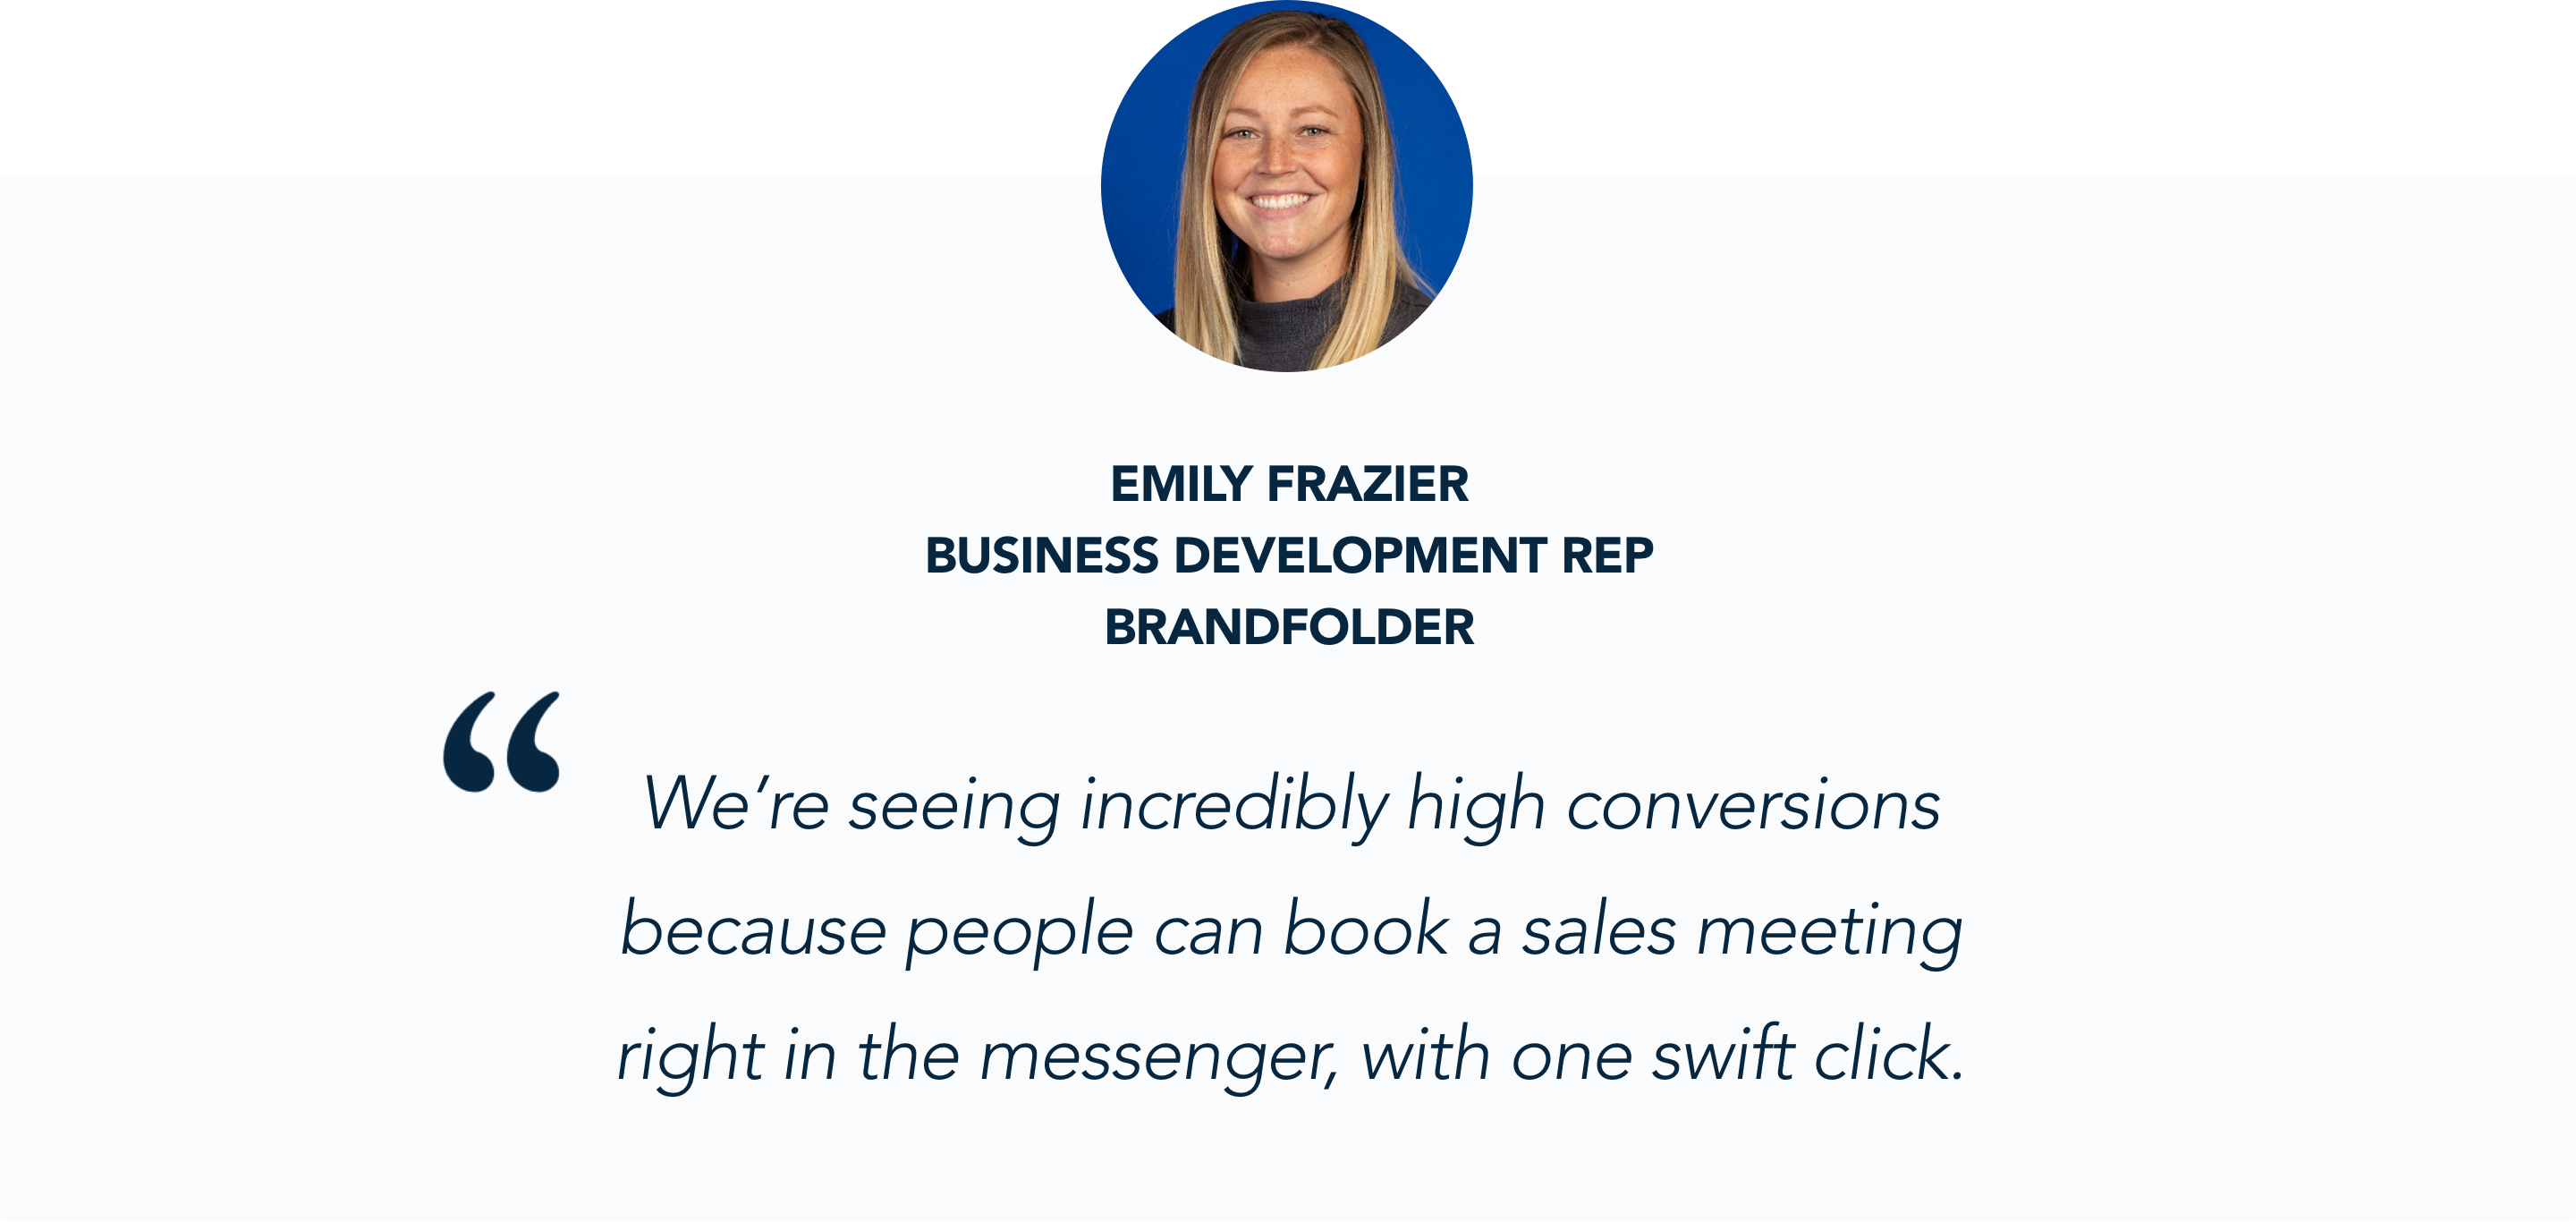 Brandfolder sales reps love the meeting booker functionality